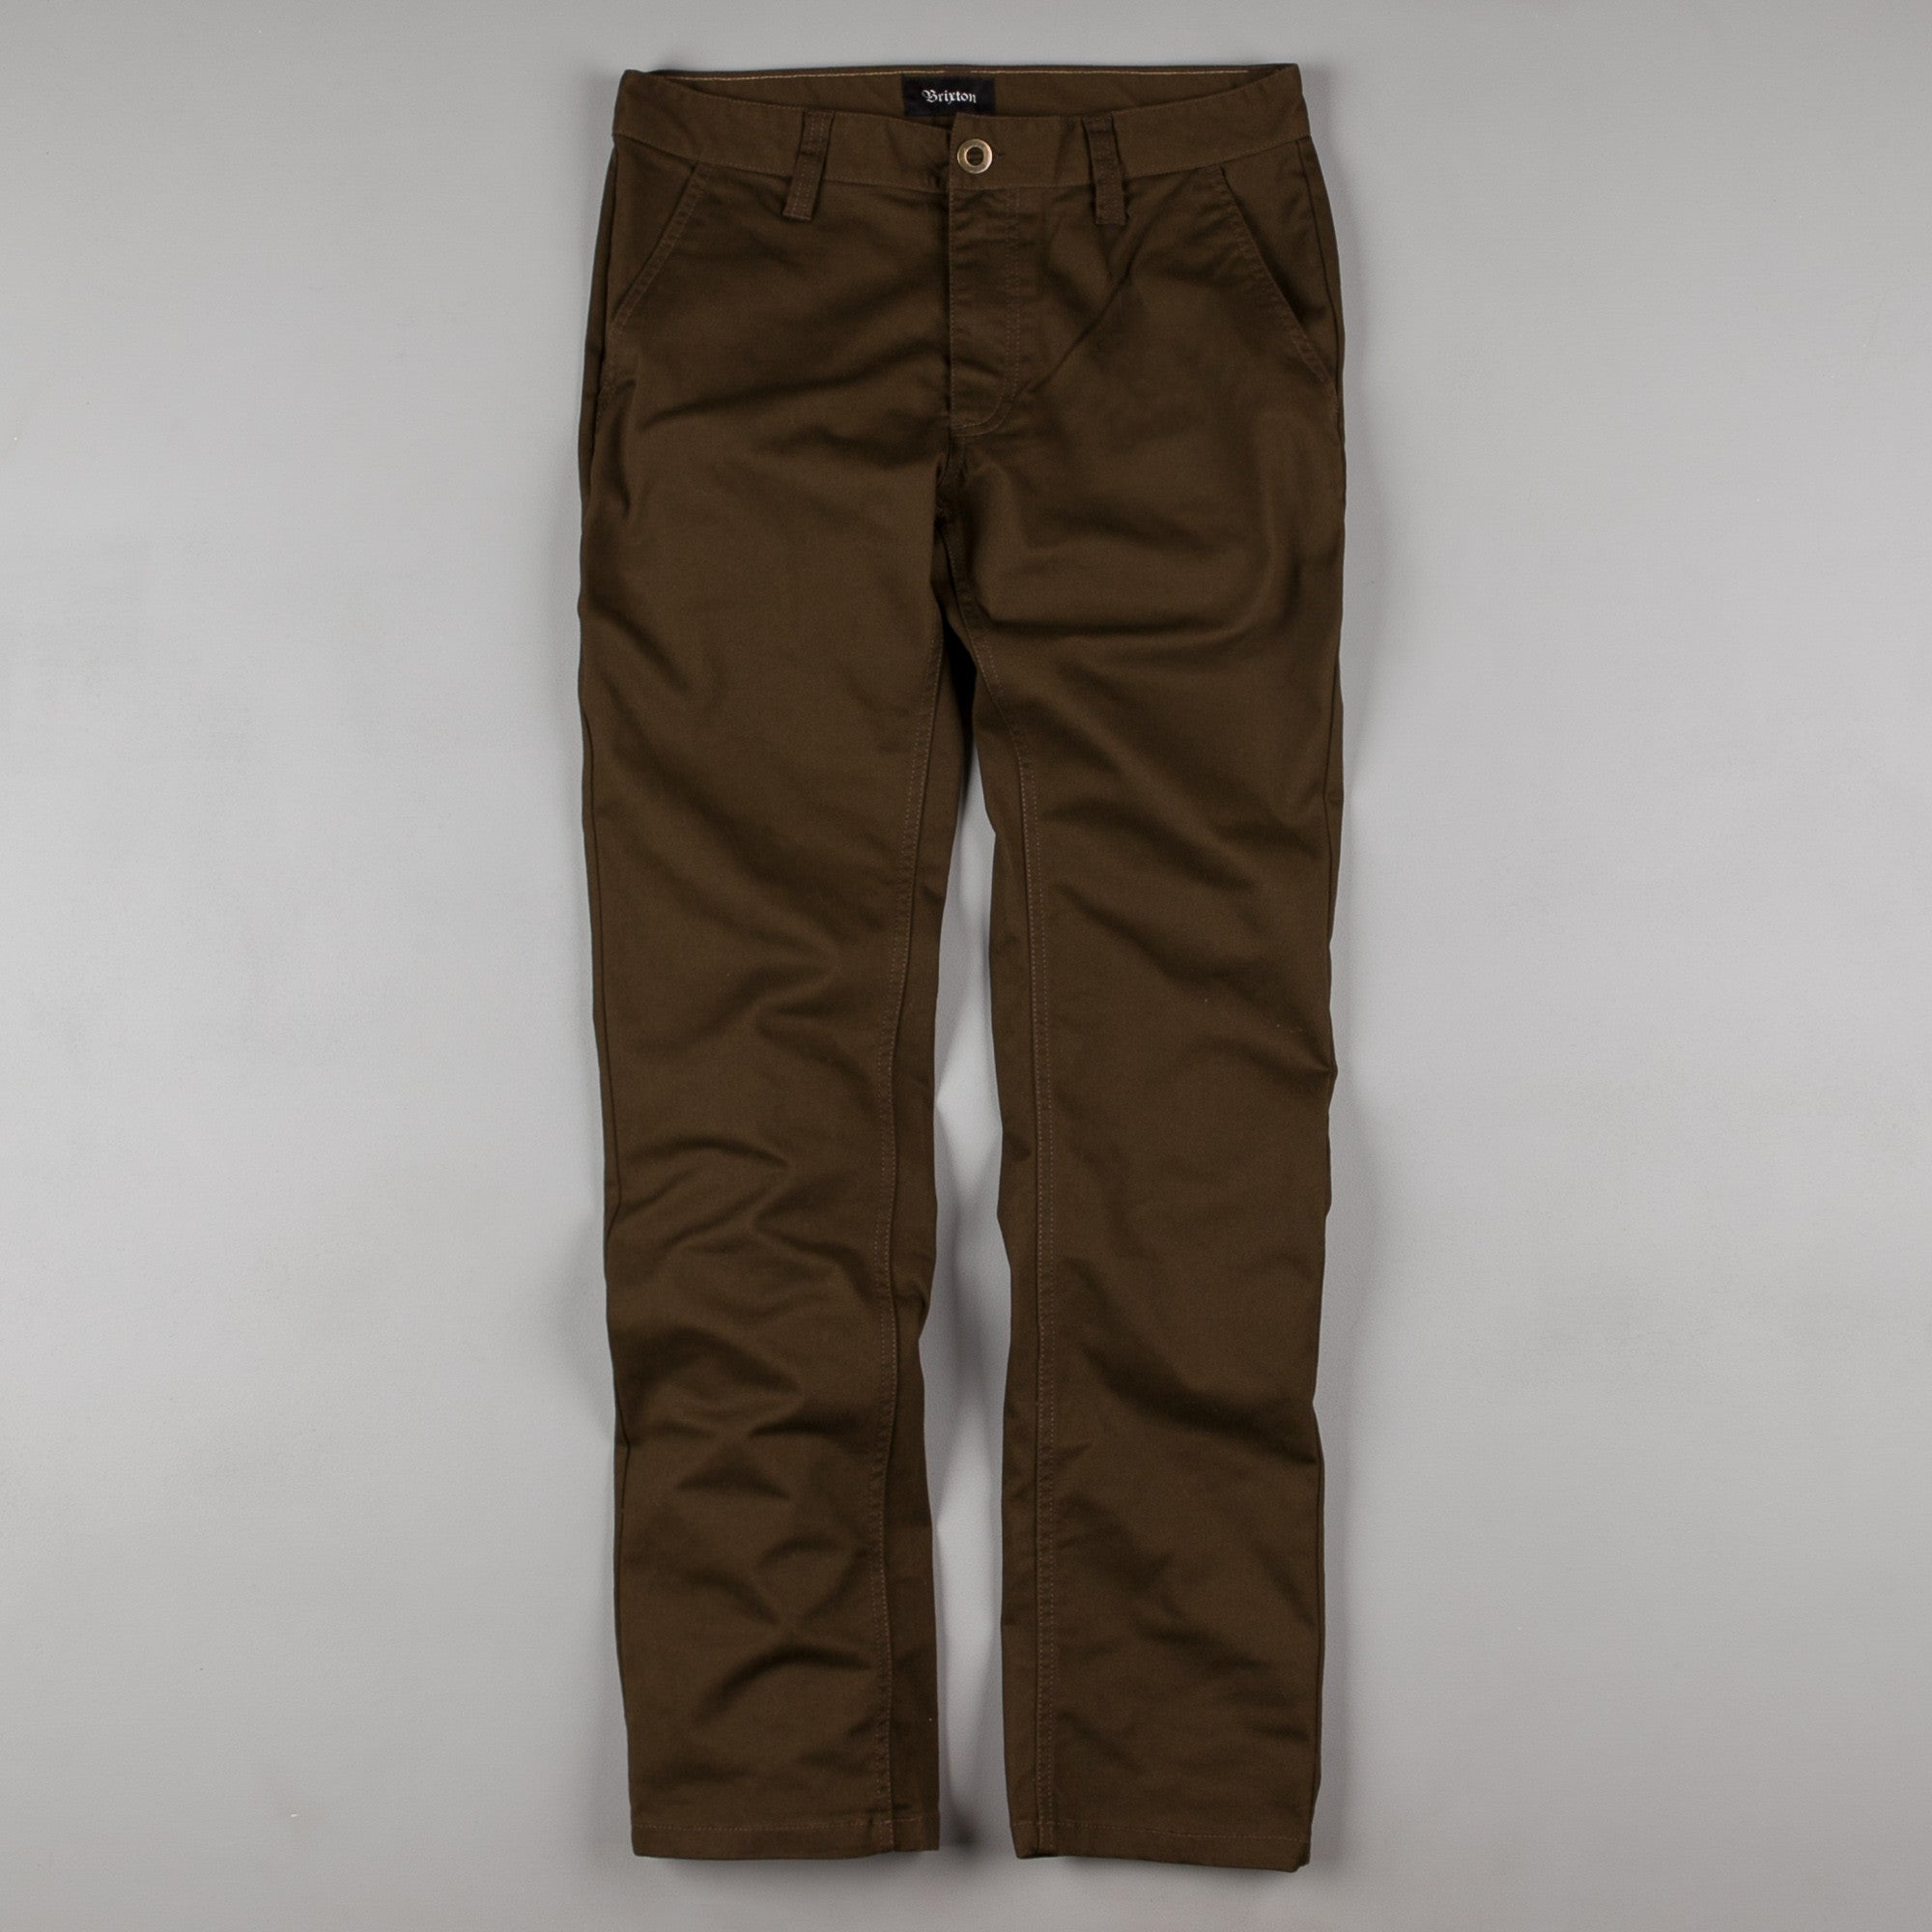 Brixton Reserve Chino Trousers - Dark Brown